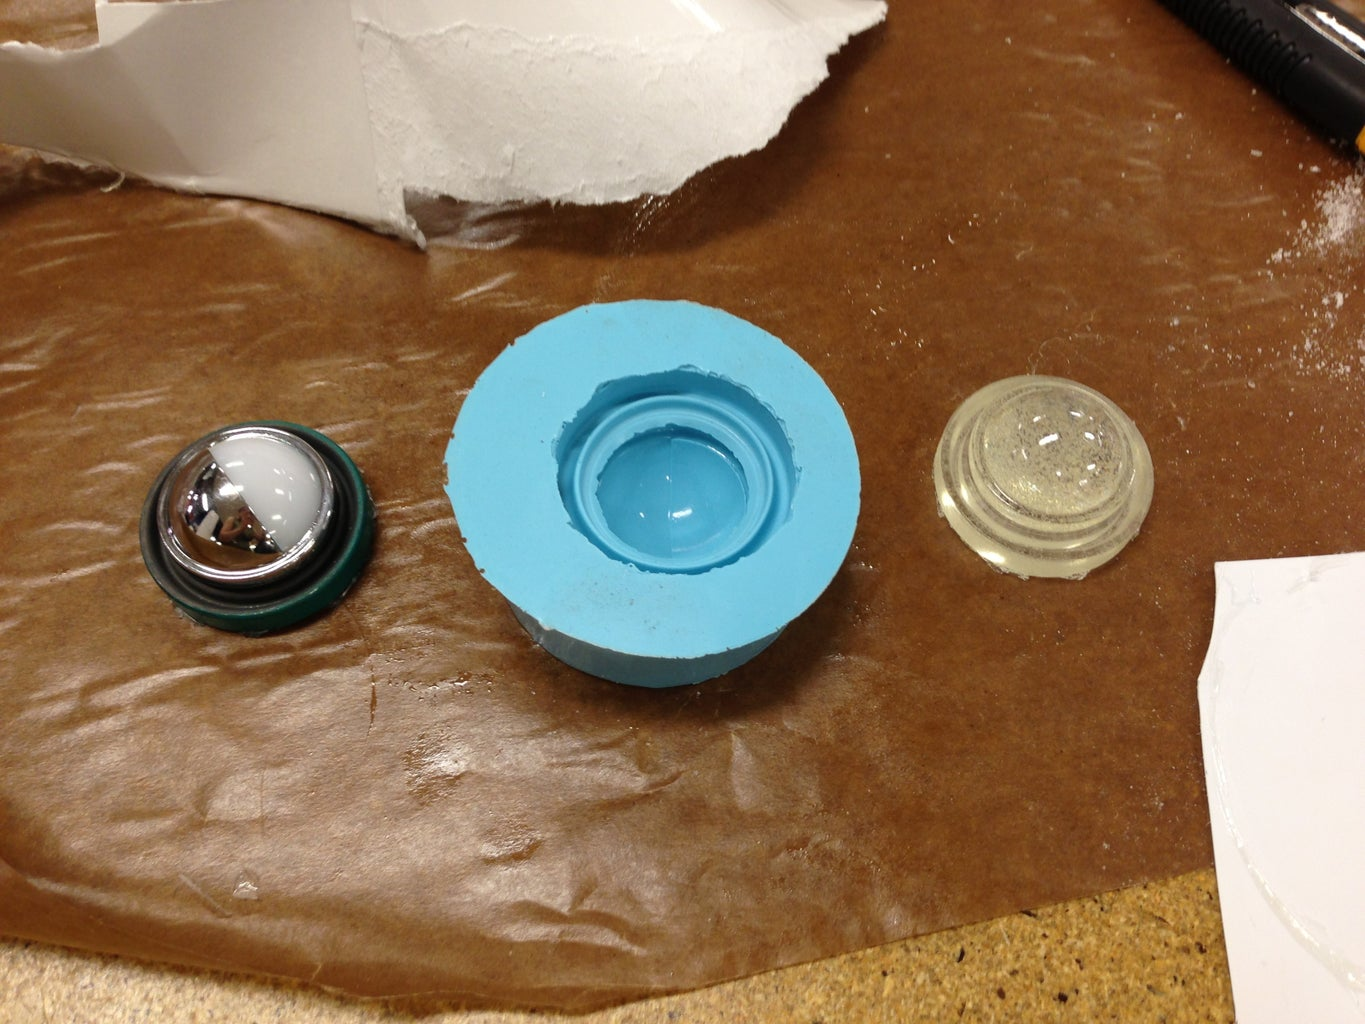 Trying My Hand At: Mold Making and Casting With Silicone RTV [Pittsburgh Tech Shop]